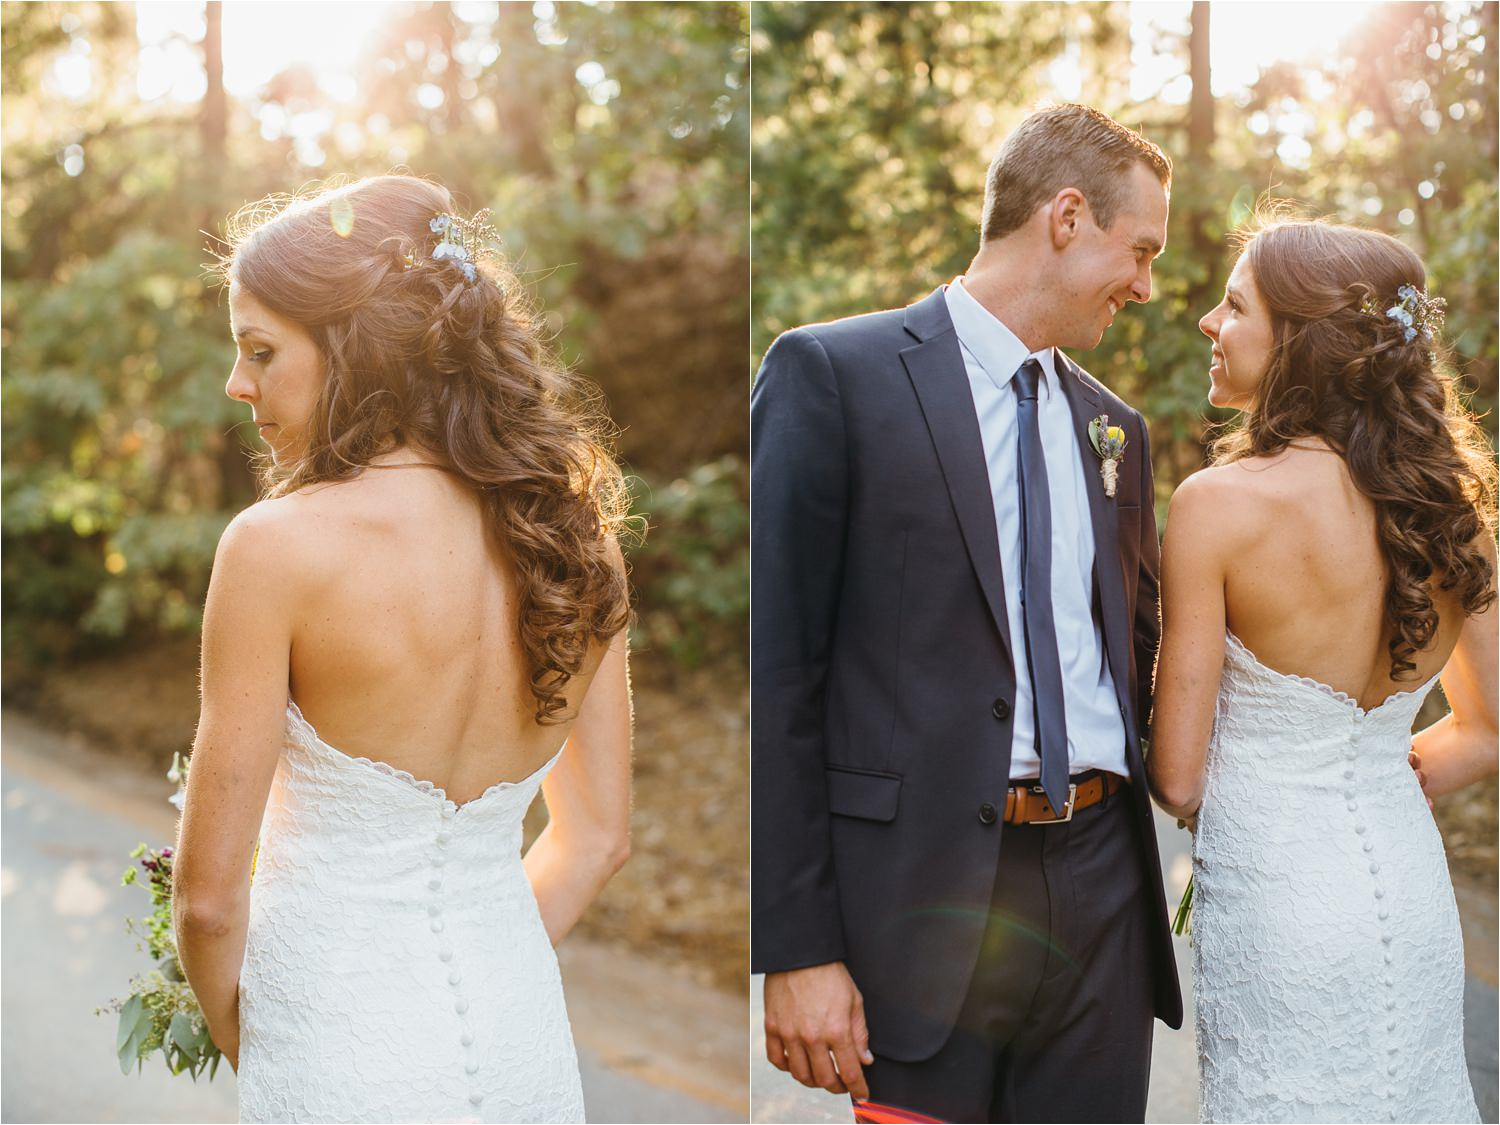 Golden Hour Sunset Photos - Bride and Groom Mountain Wedding - Lake Arrowhead, CA - https://brittneyhannonphotography.com